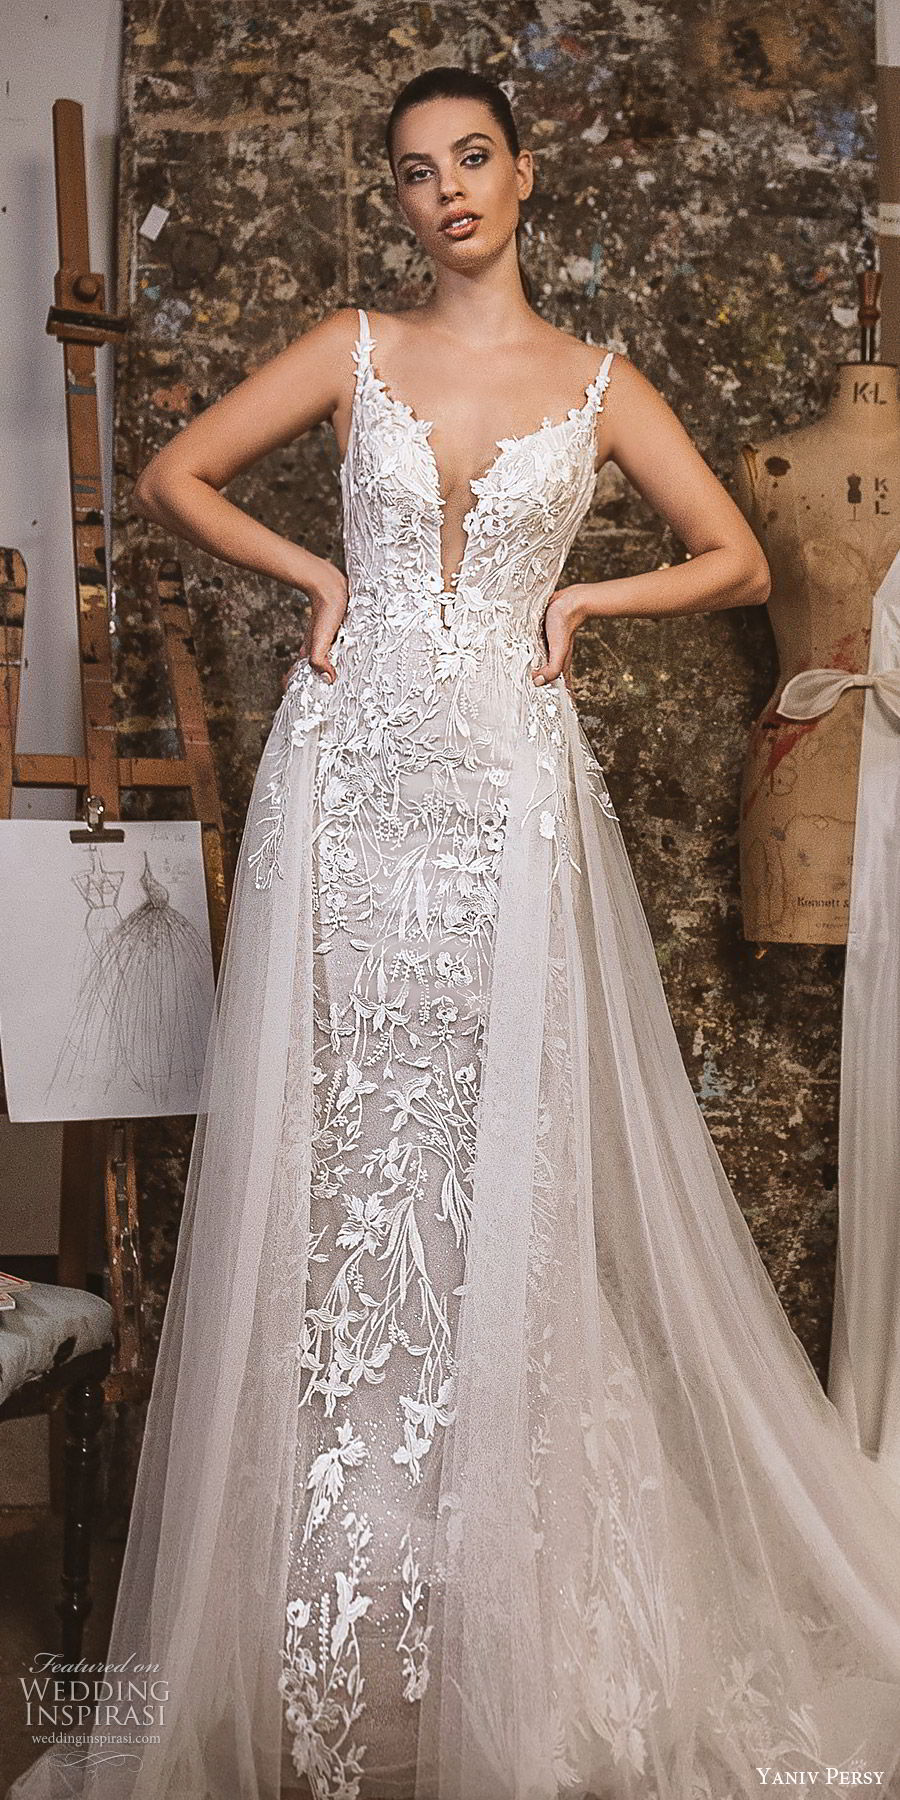 yaniv persy fall 2019 lavish bridal sleeveless embellished straps plunging split sweetheart neckline lace sheath wedding dress a line tulle overksirt romantic (11) zv